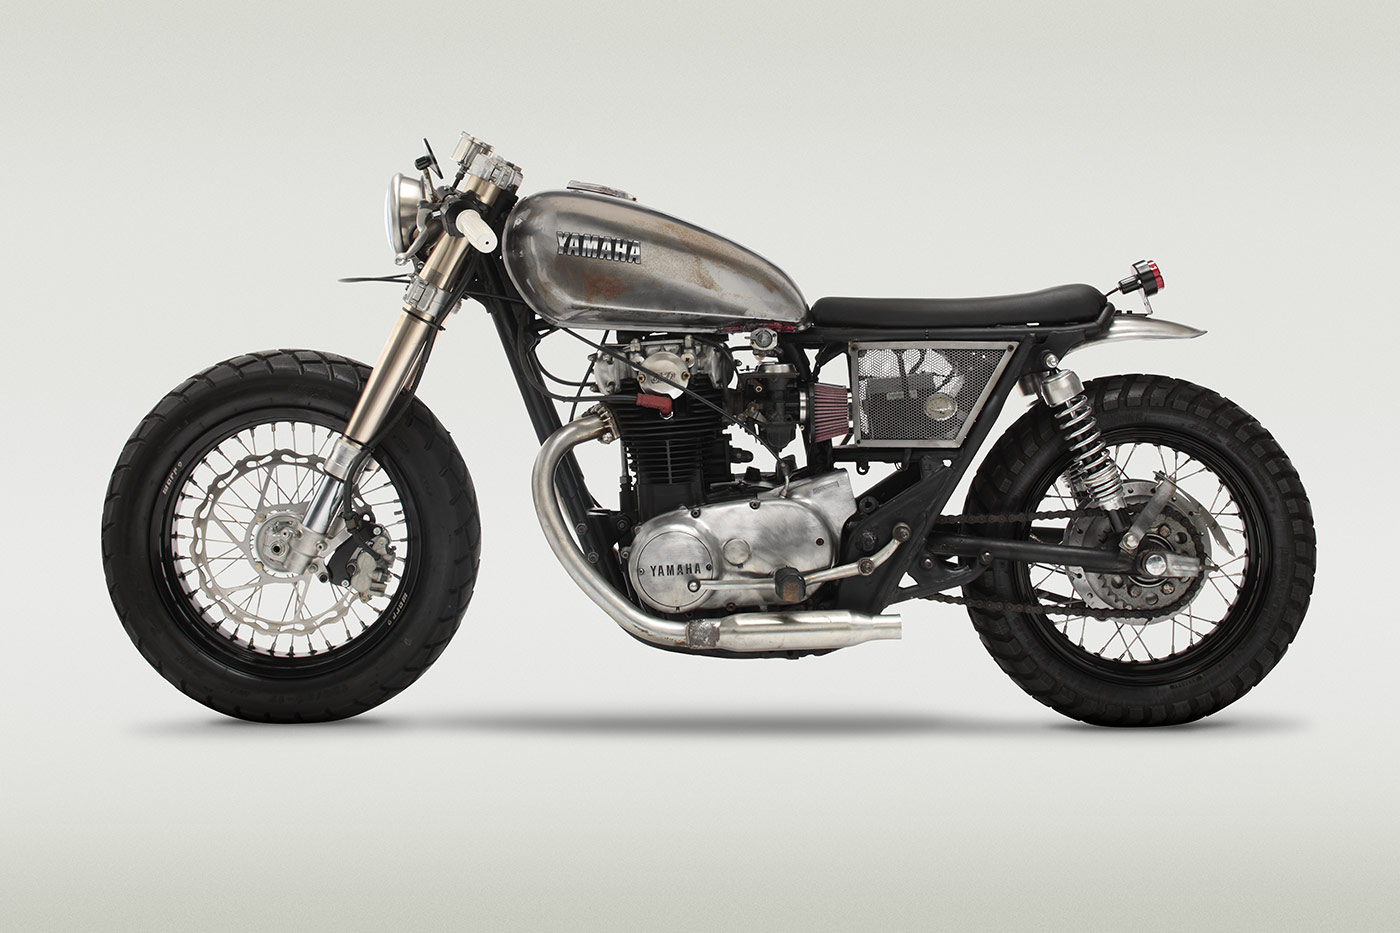 xs650 yamazuki classified moto